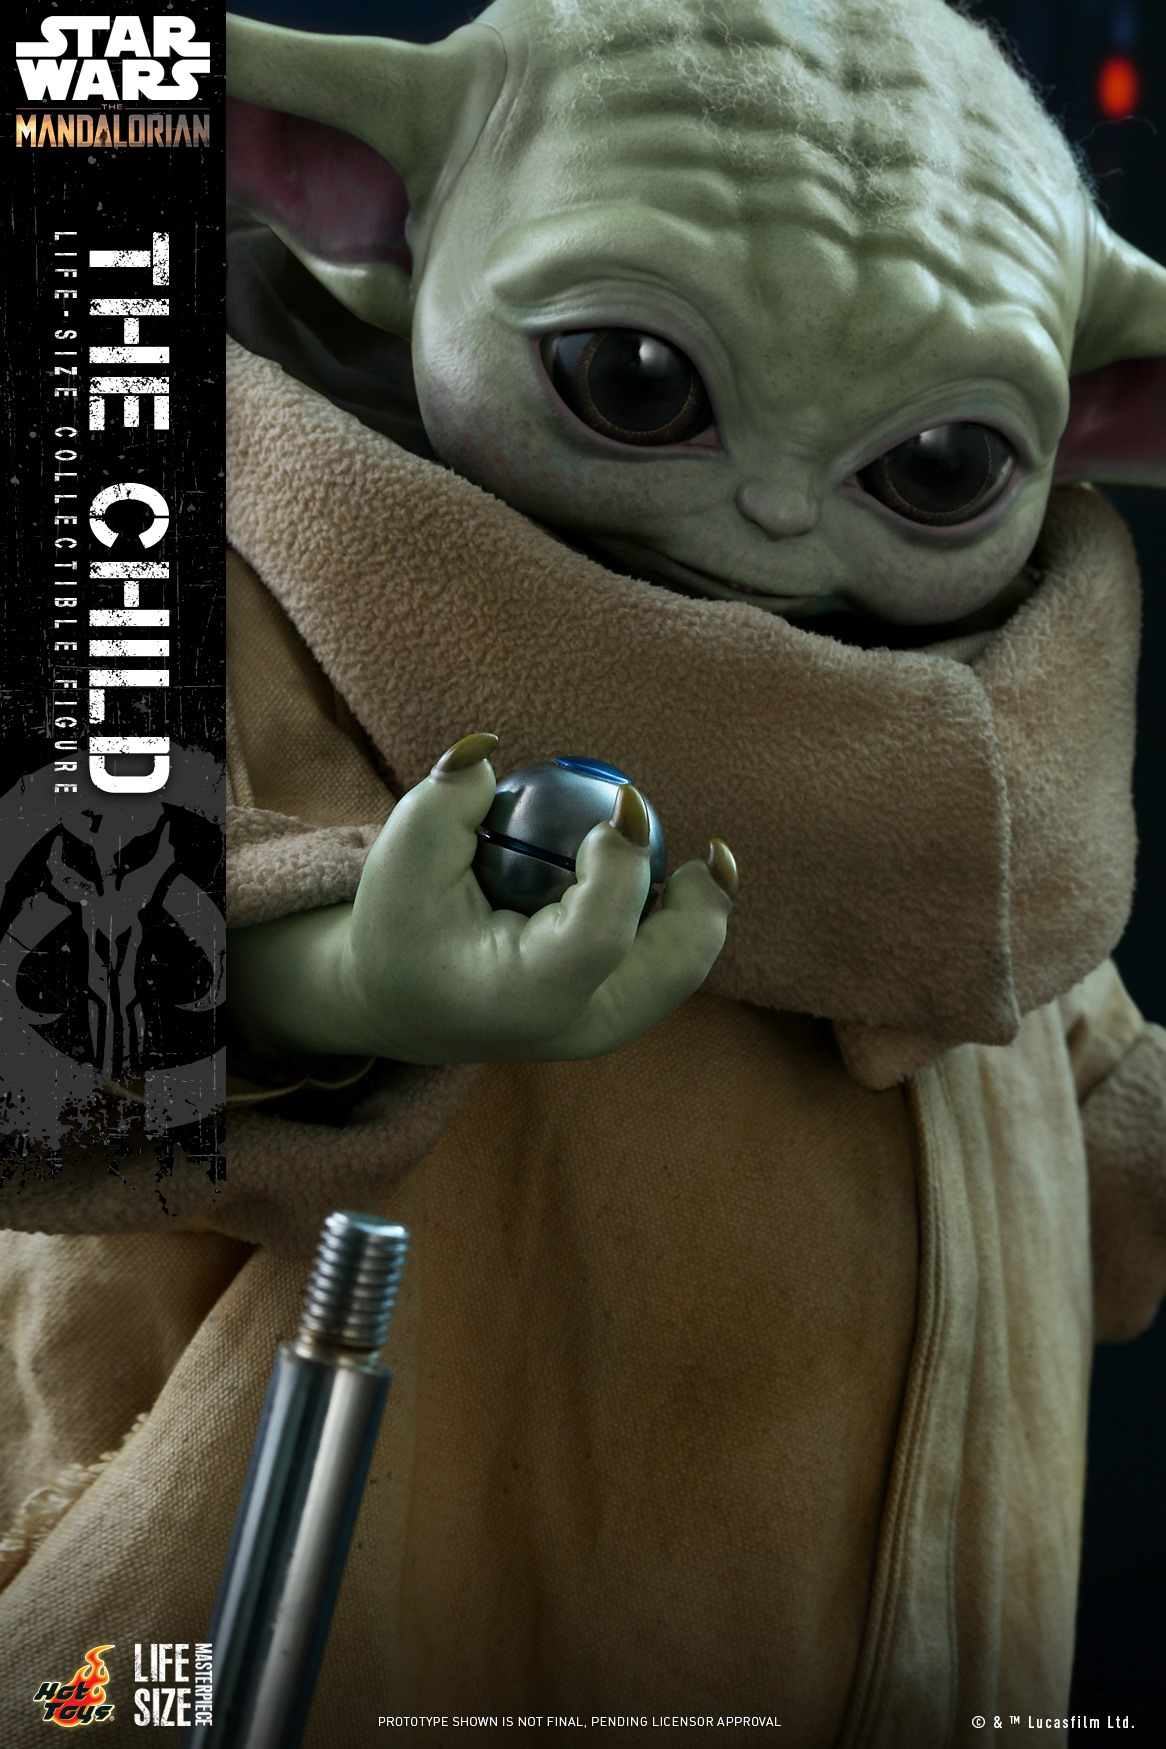 Pre-Order Hot Toys Star Wars The Child Life Size Figure